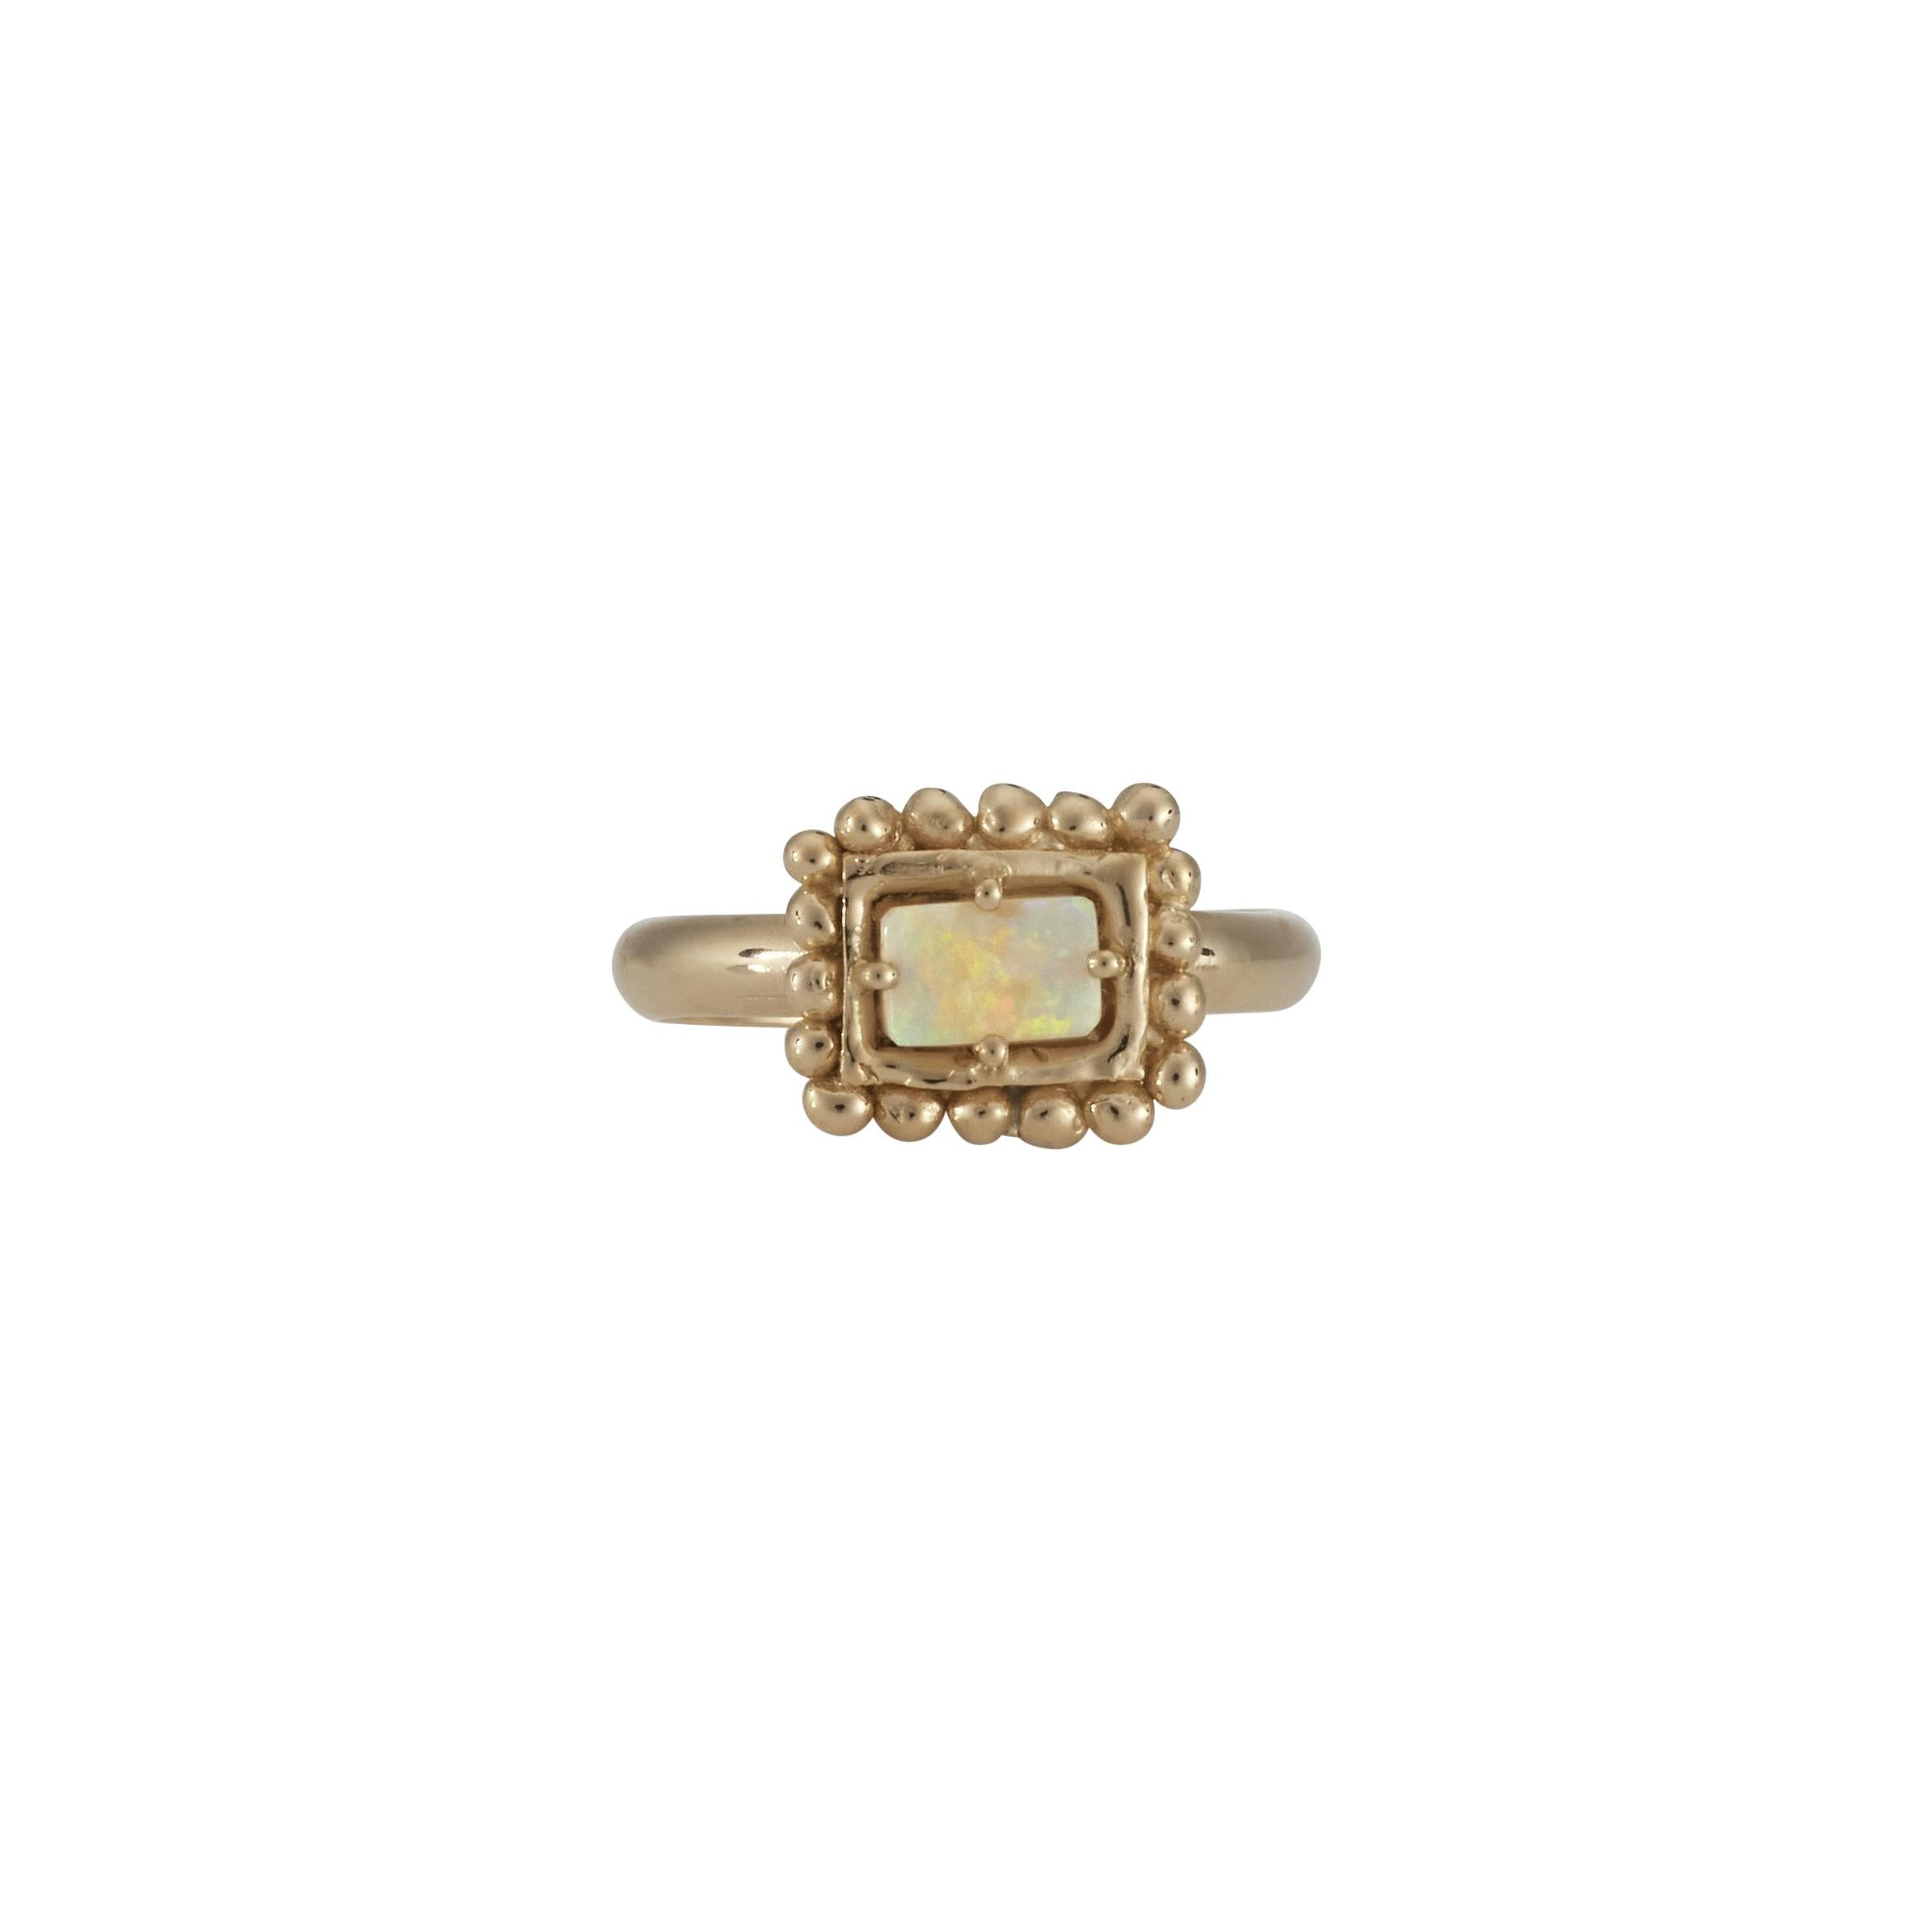 Sabine Ring with Australian Opal, 18k Yellow Gold